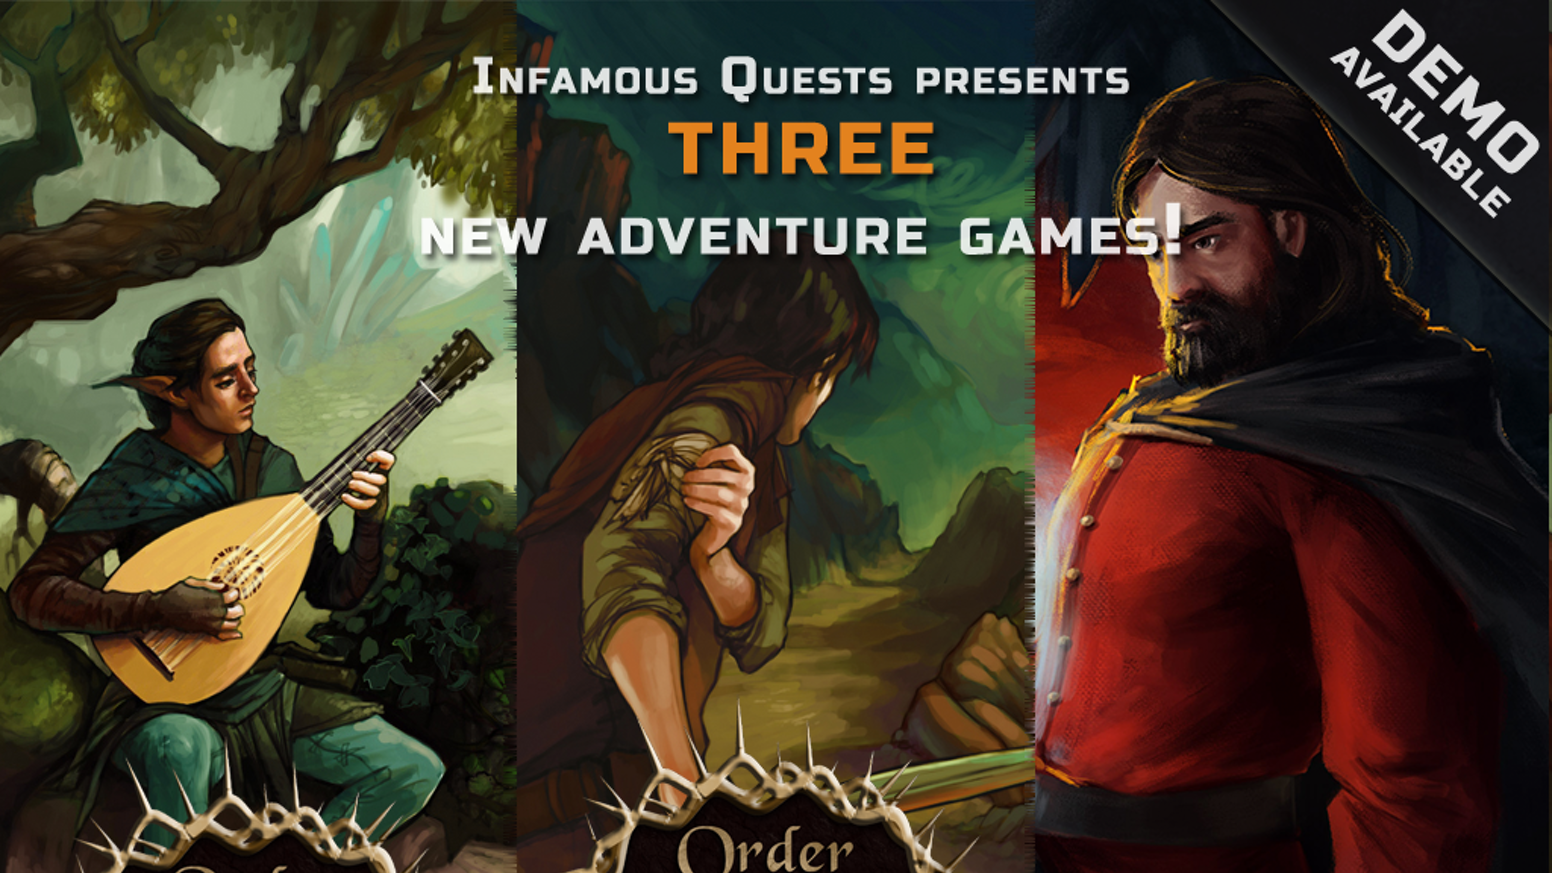 Support Infamous Quests and help them complete their two new upcoming Point & Click Adventure Games!